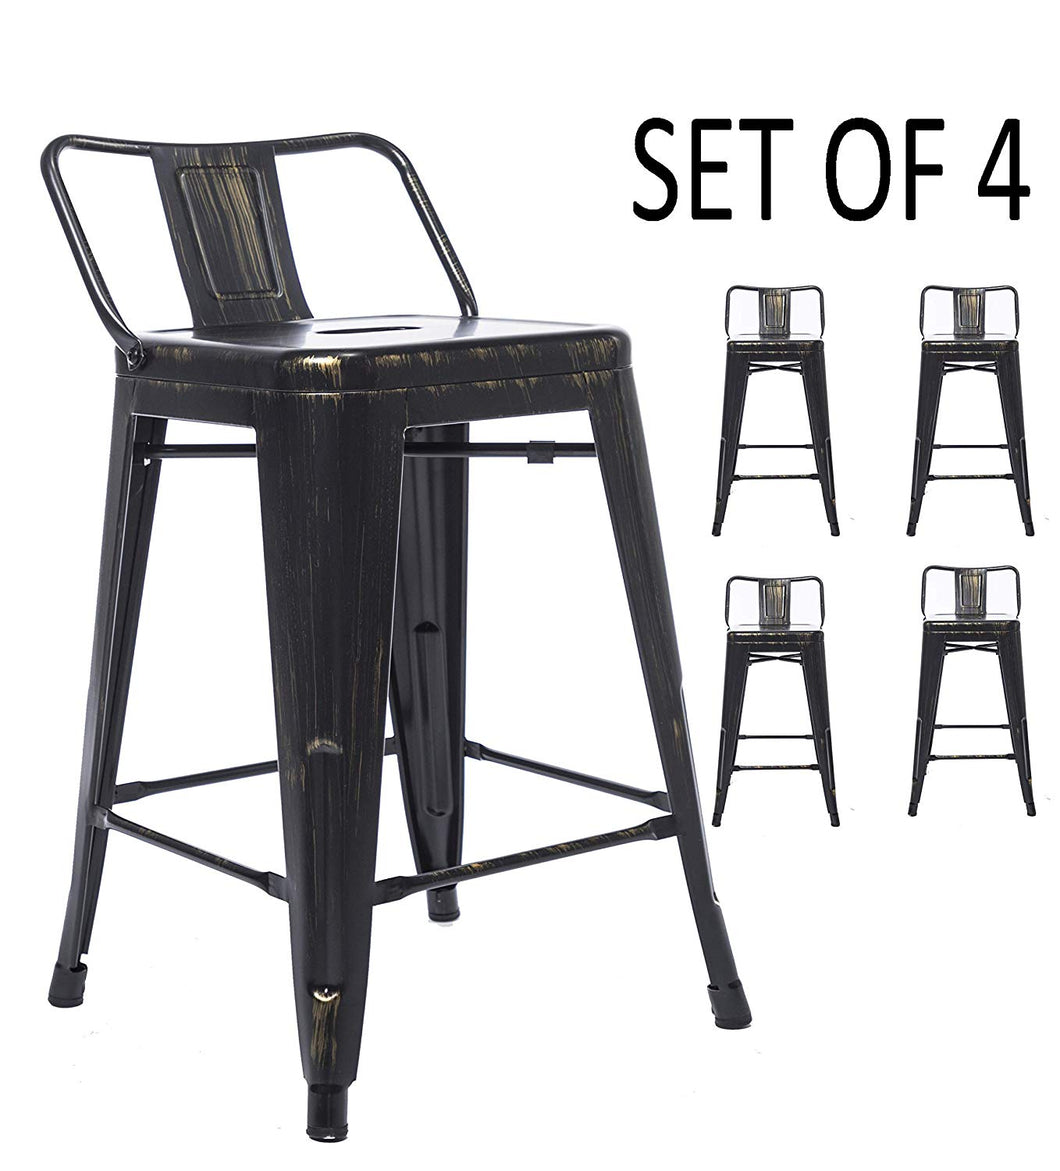 BTEXPERT Industrial 30 inch Golden Black Distressed Kitchen Chic Indoor Outdoor Low Back Metal Bar Stool 4PC